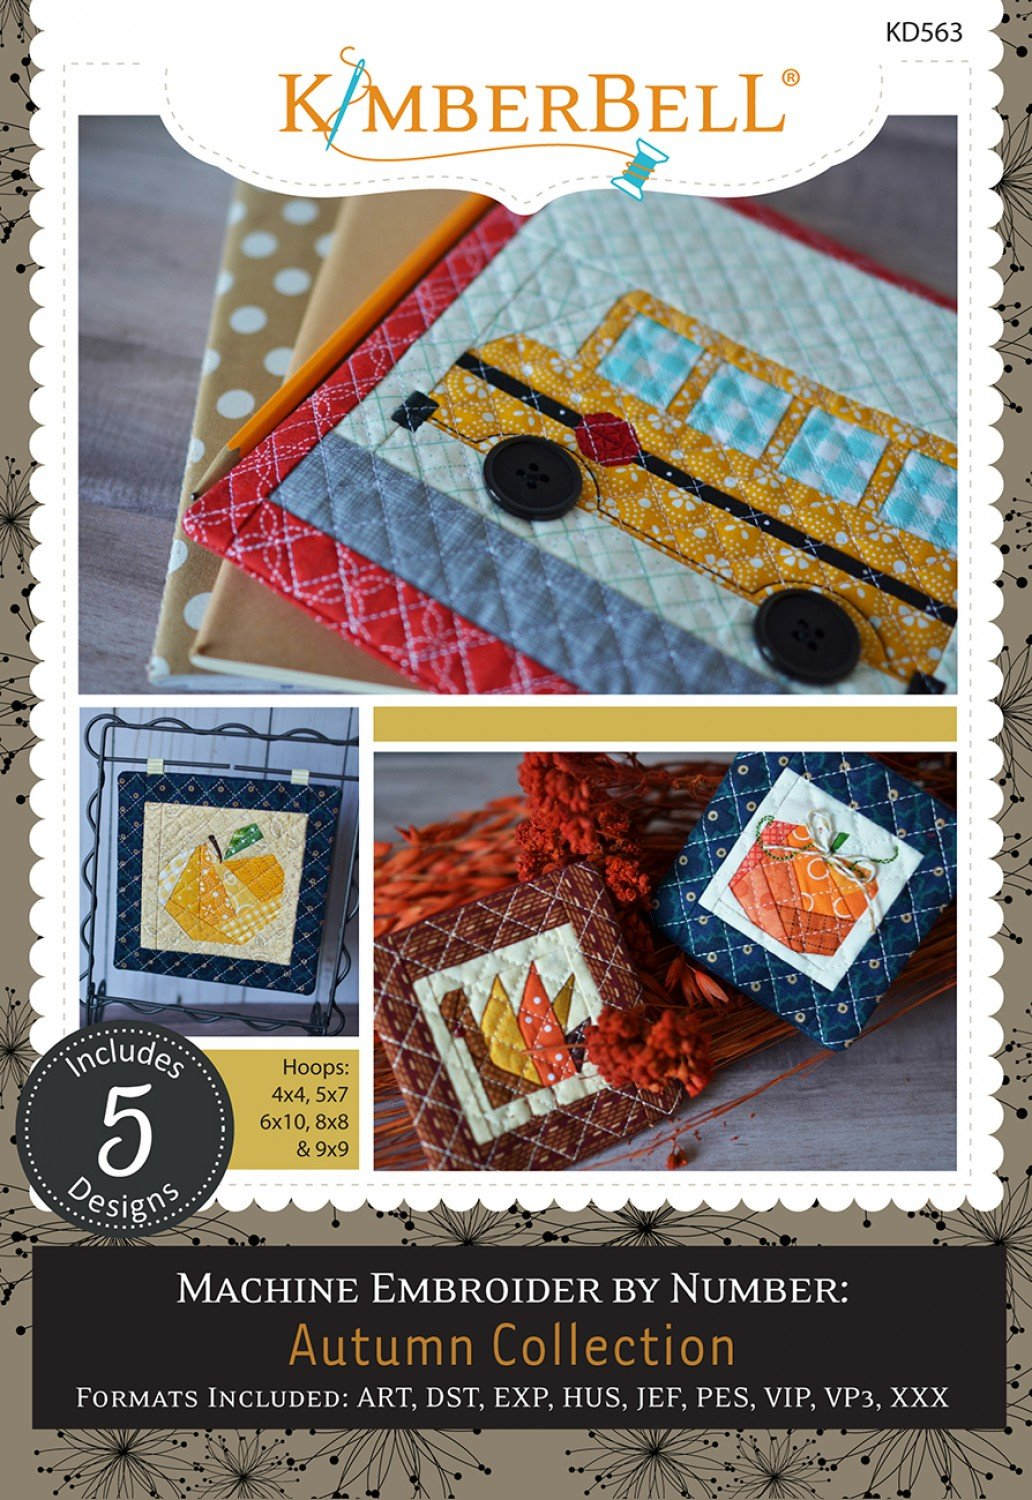 Machine Embroidery by Number - Autumn Collection CD